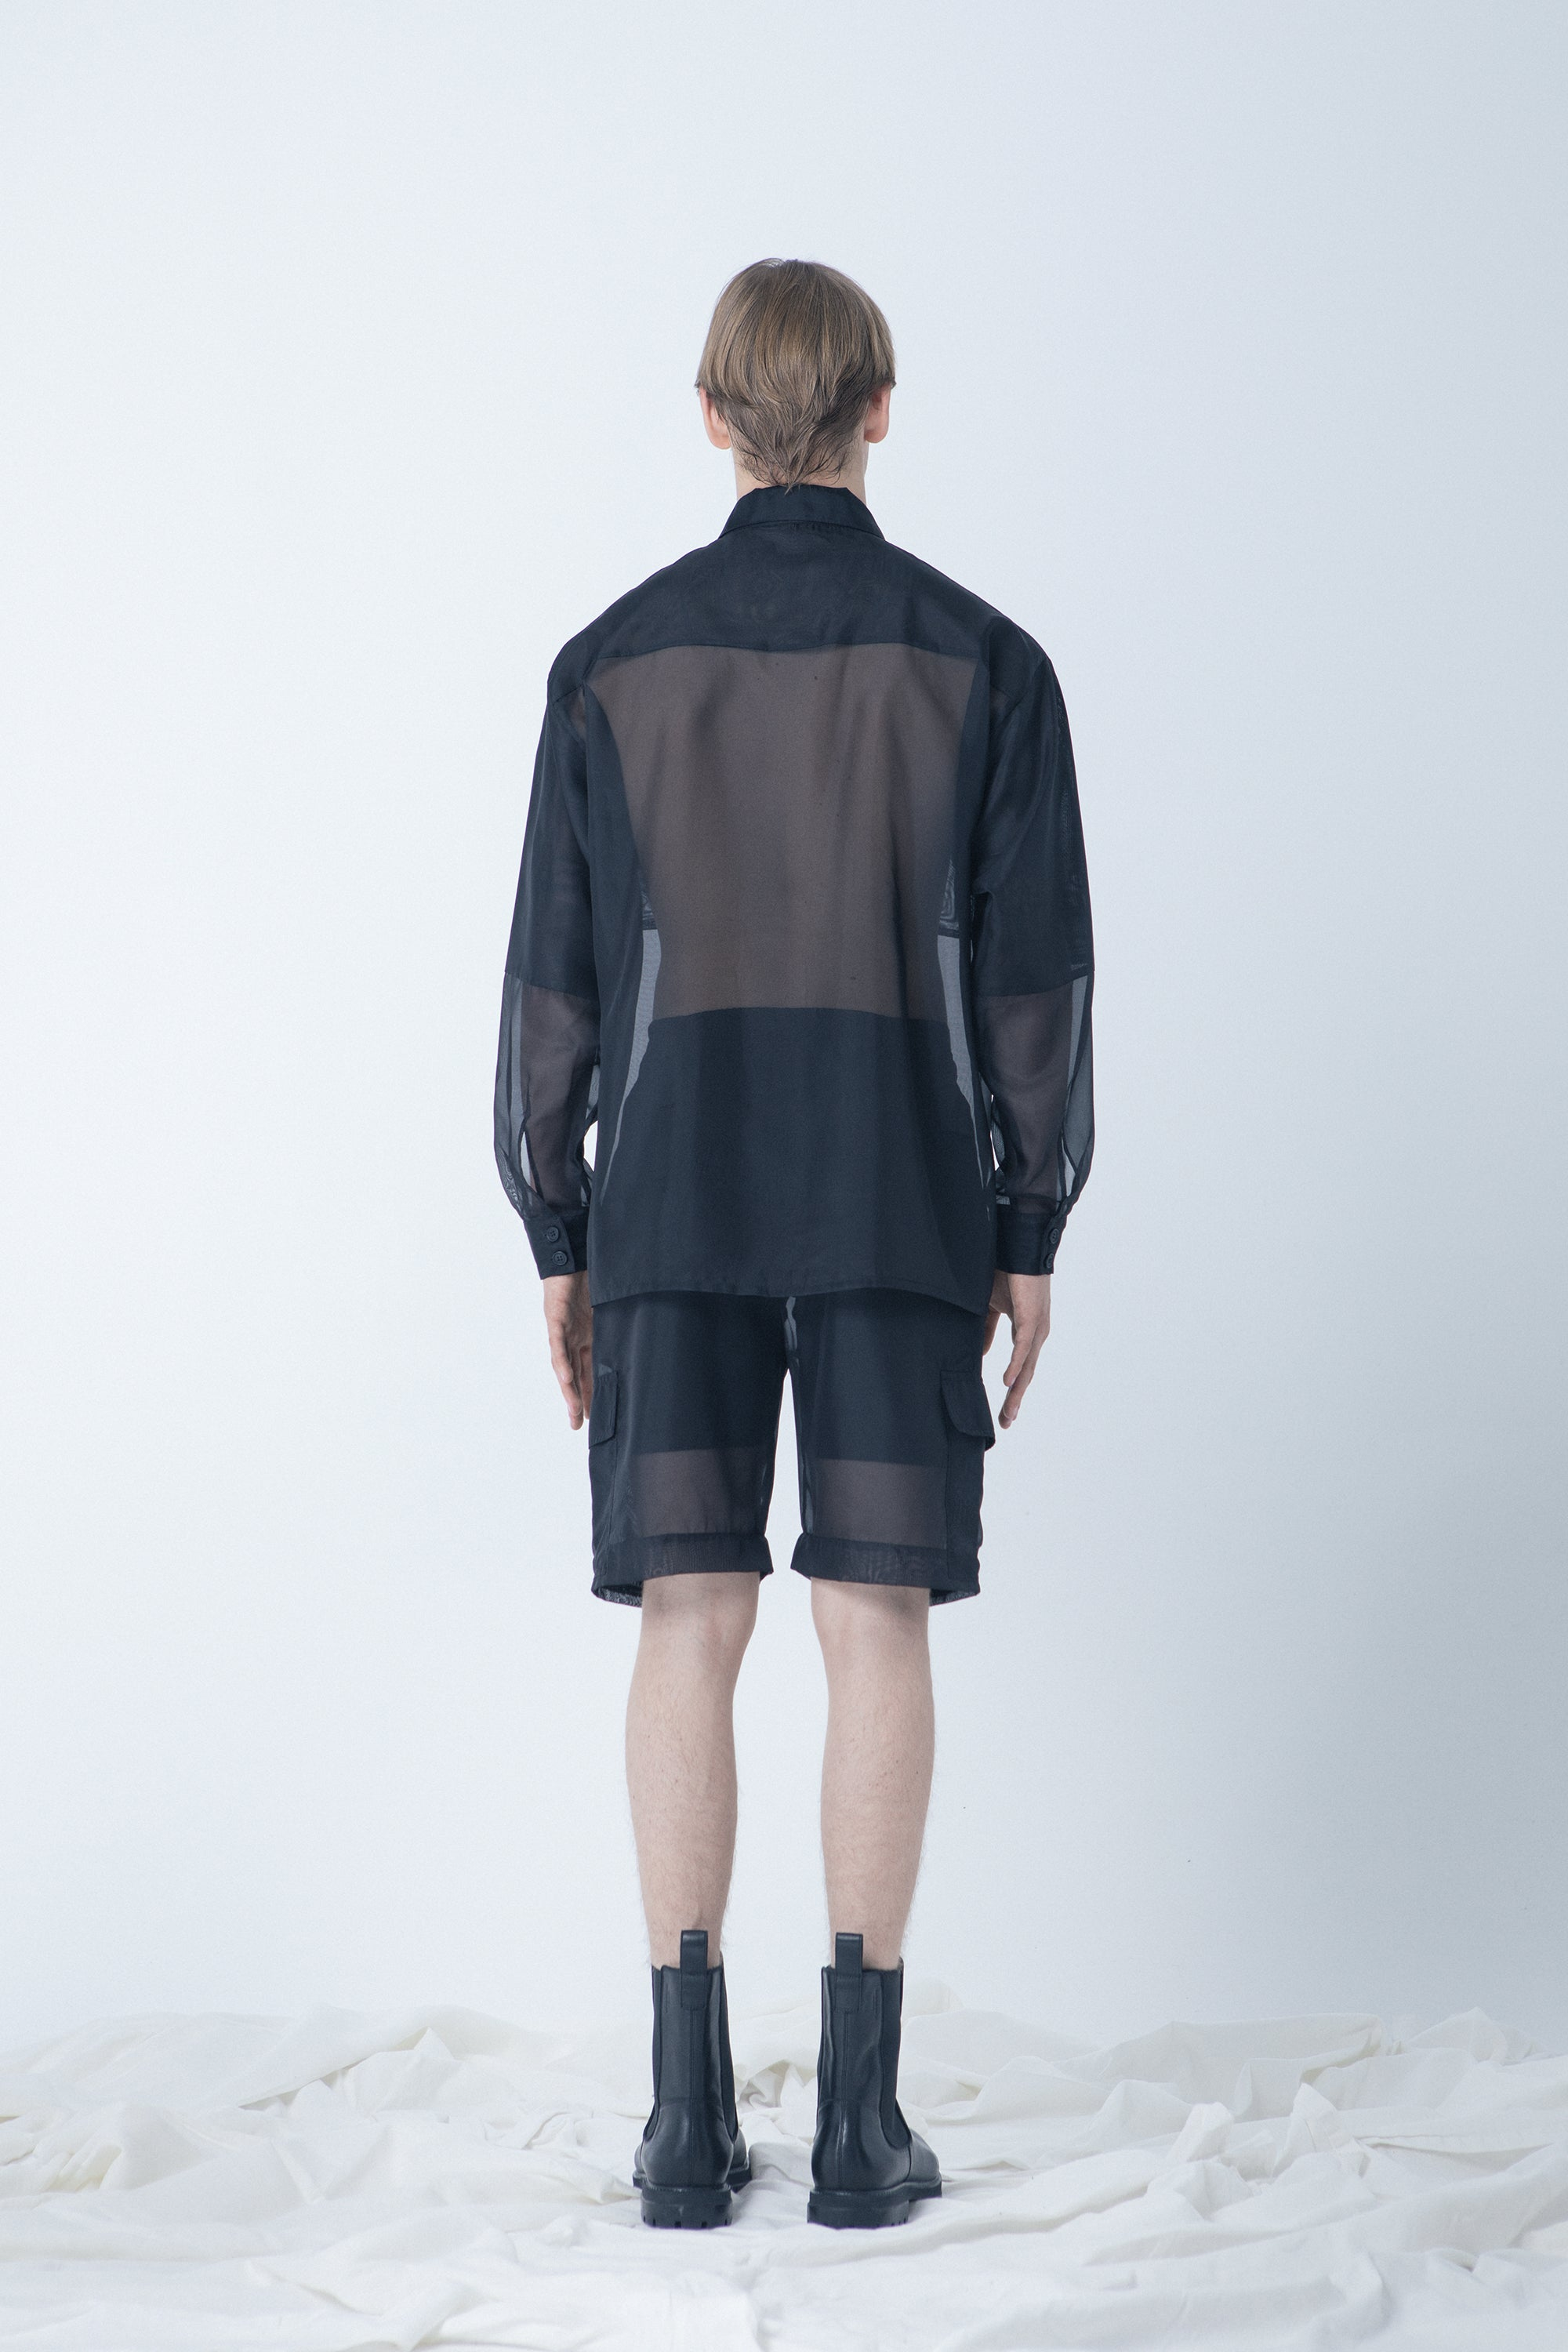 Transparent Shirt [Unisex]